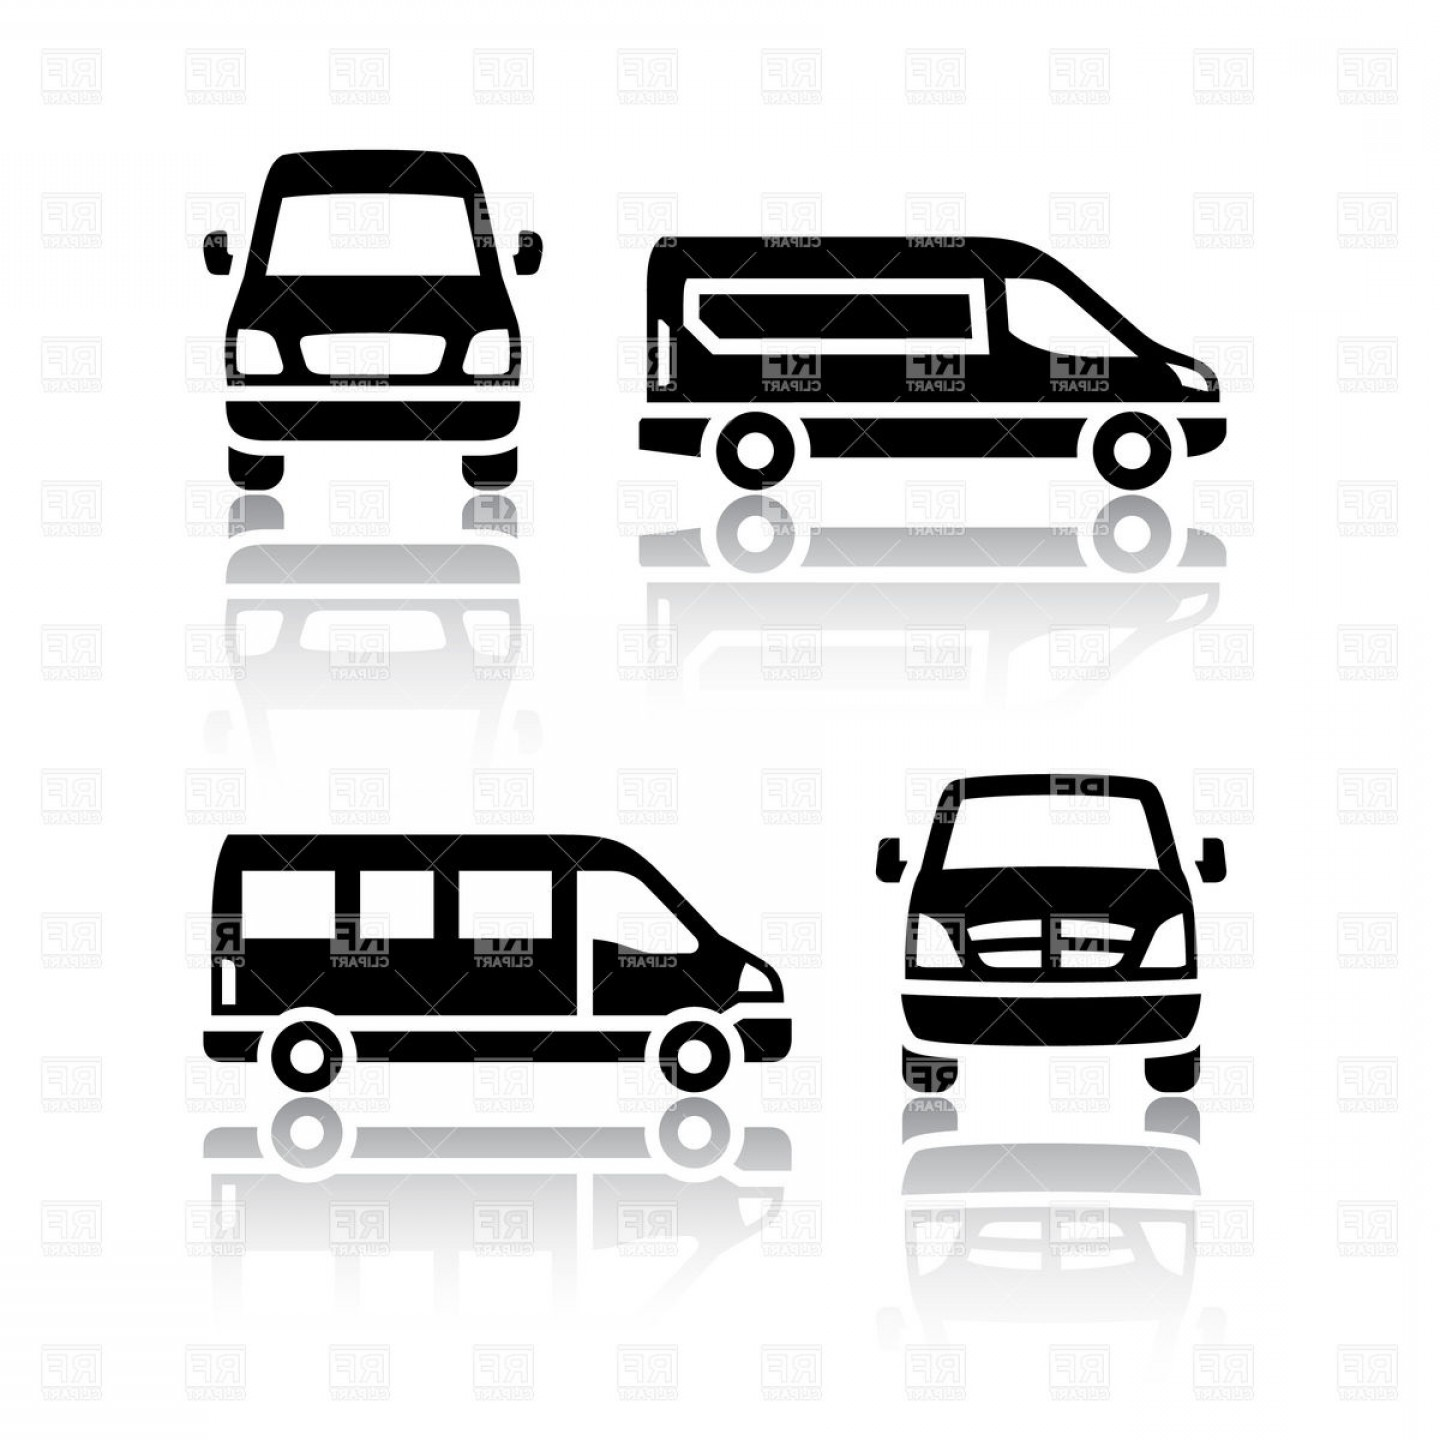 Cargo Or Delivery Van And Minibus Vector Clipart.